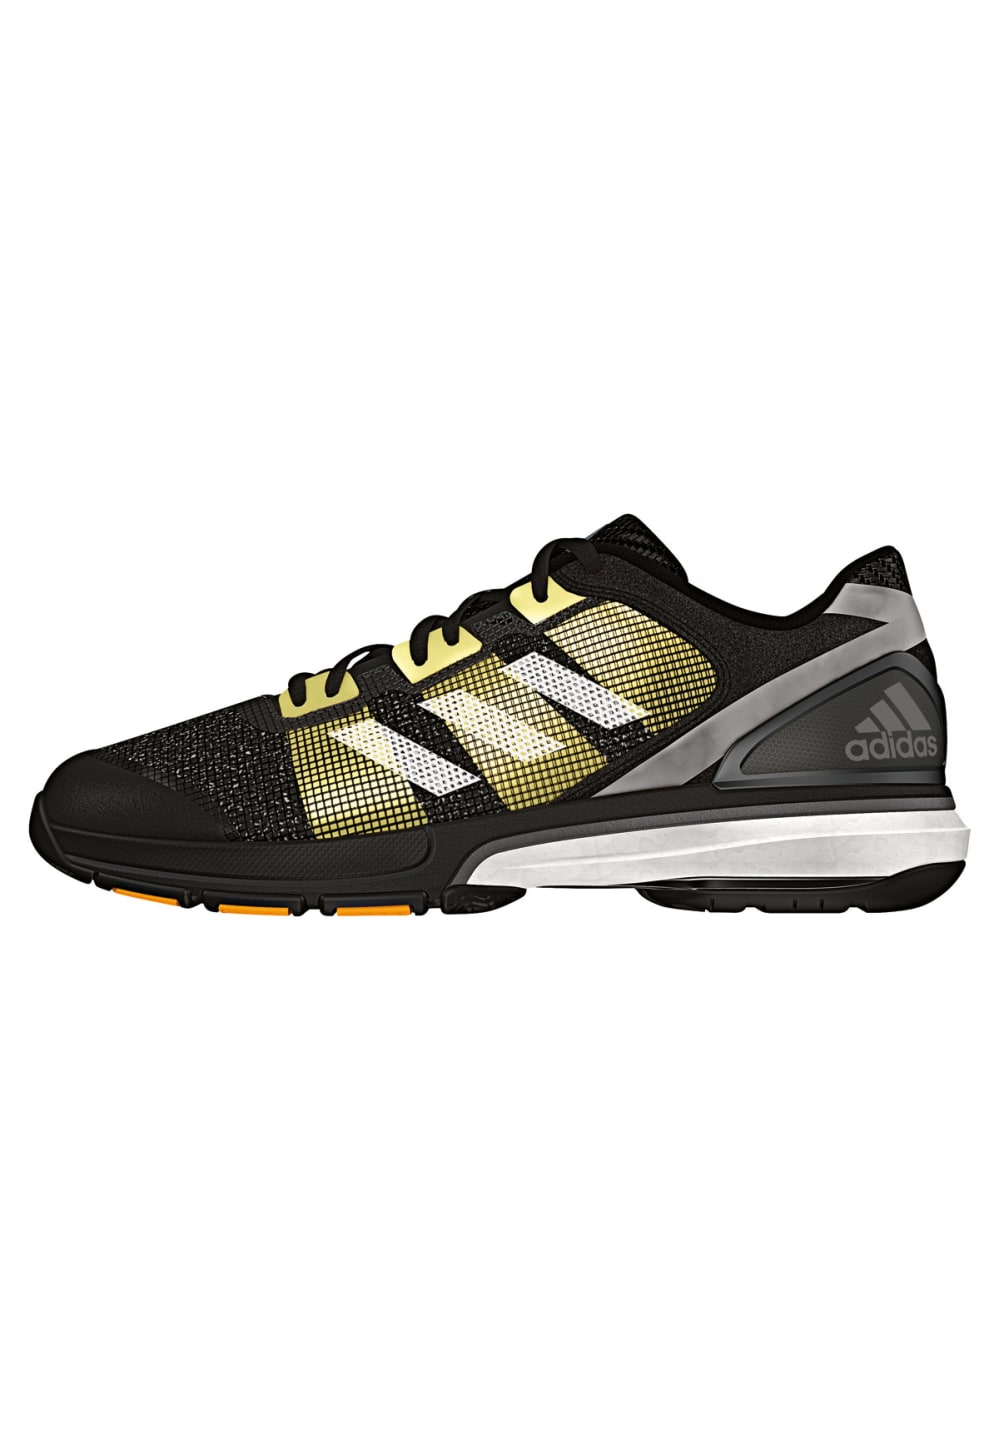 0314a5c31 ... adidas Stabil Boost II - Handball shoes for Men - Black. Back to  Overview. 1  2. Previous